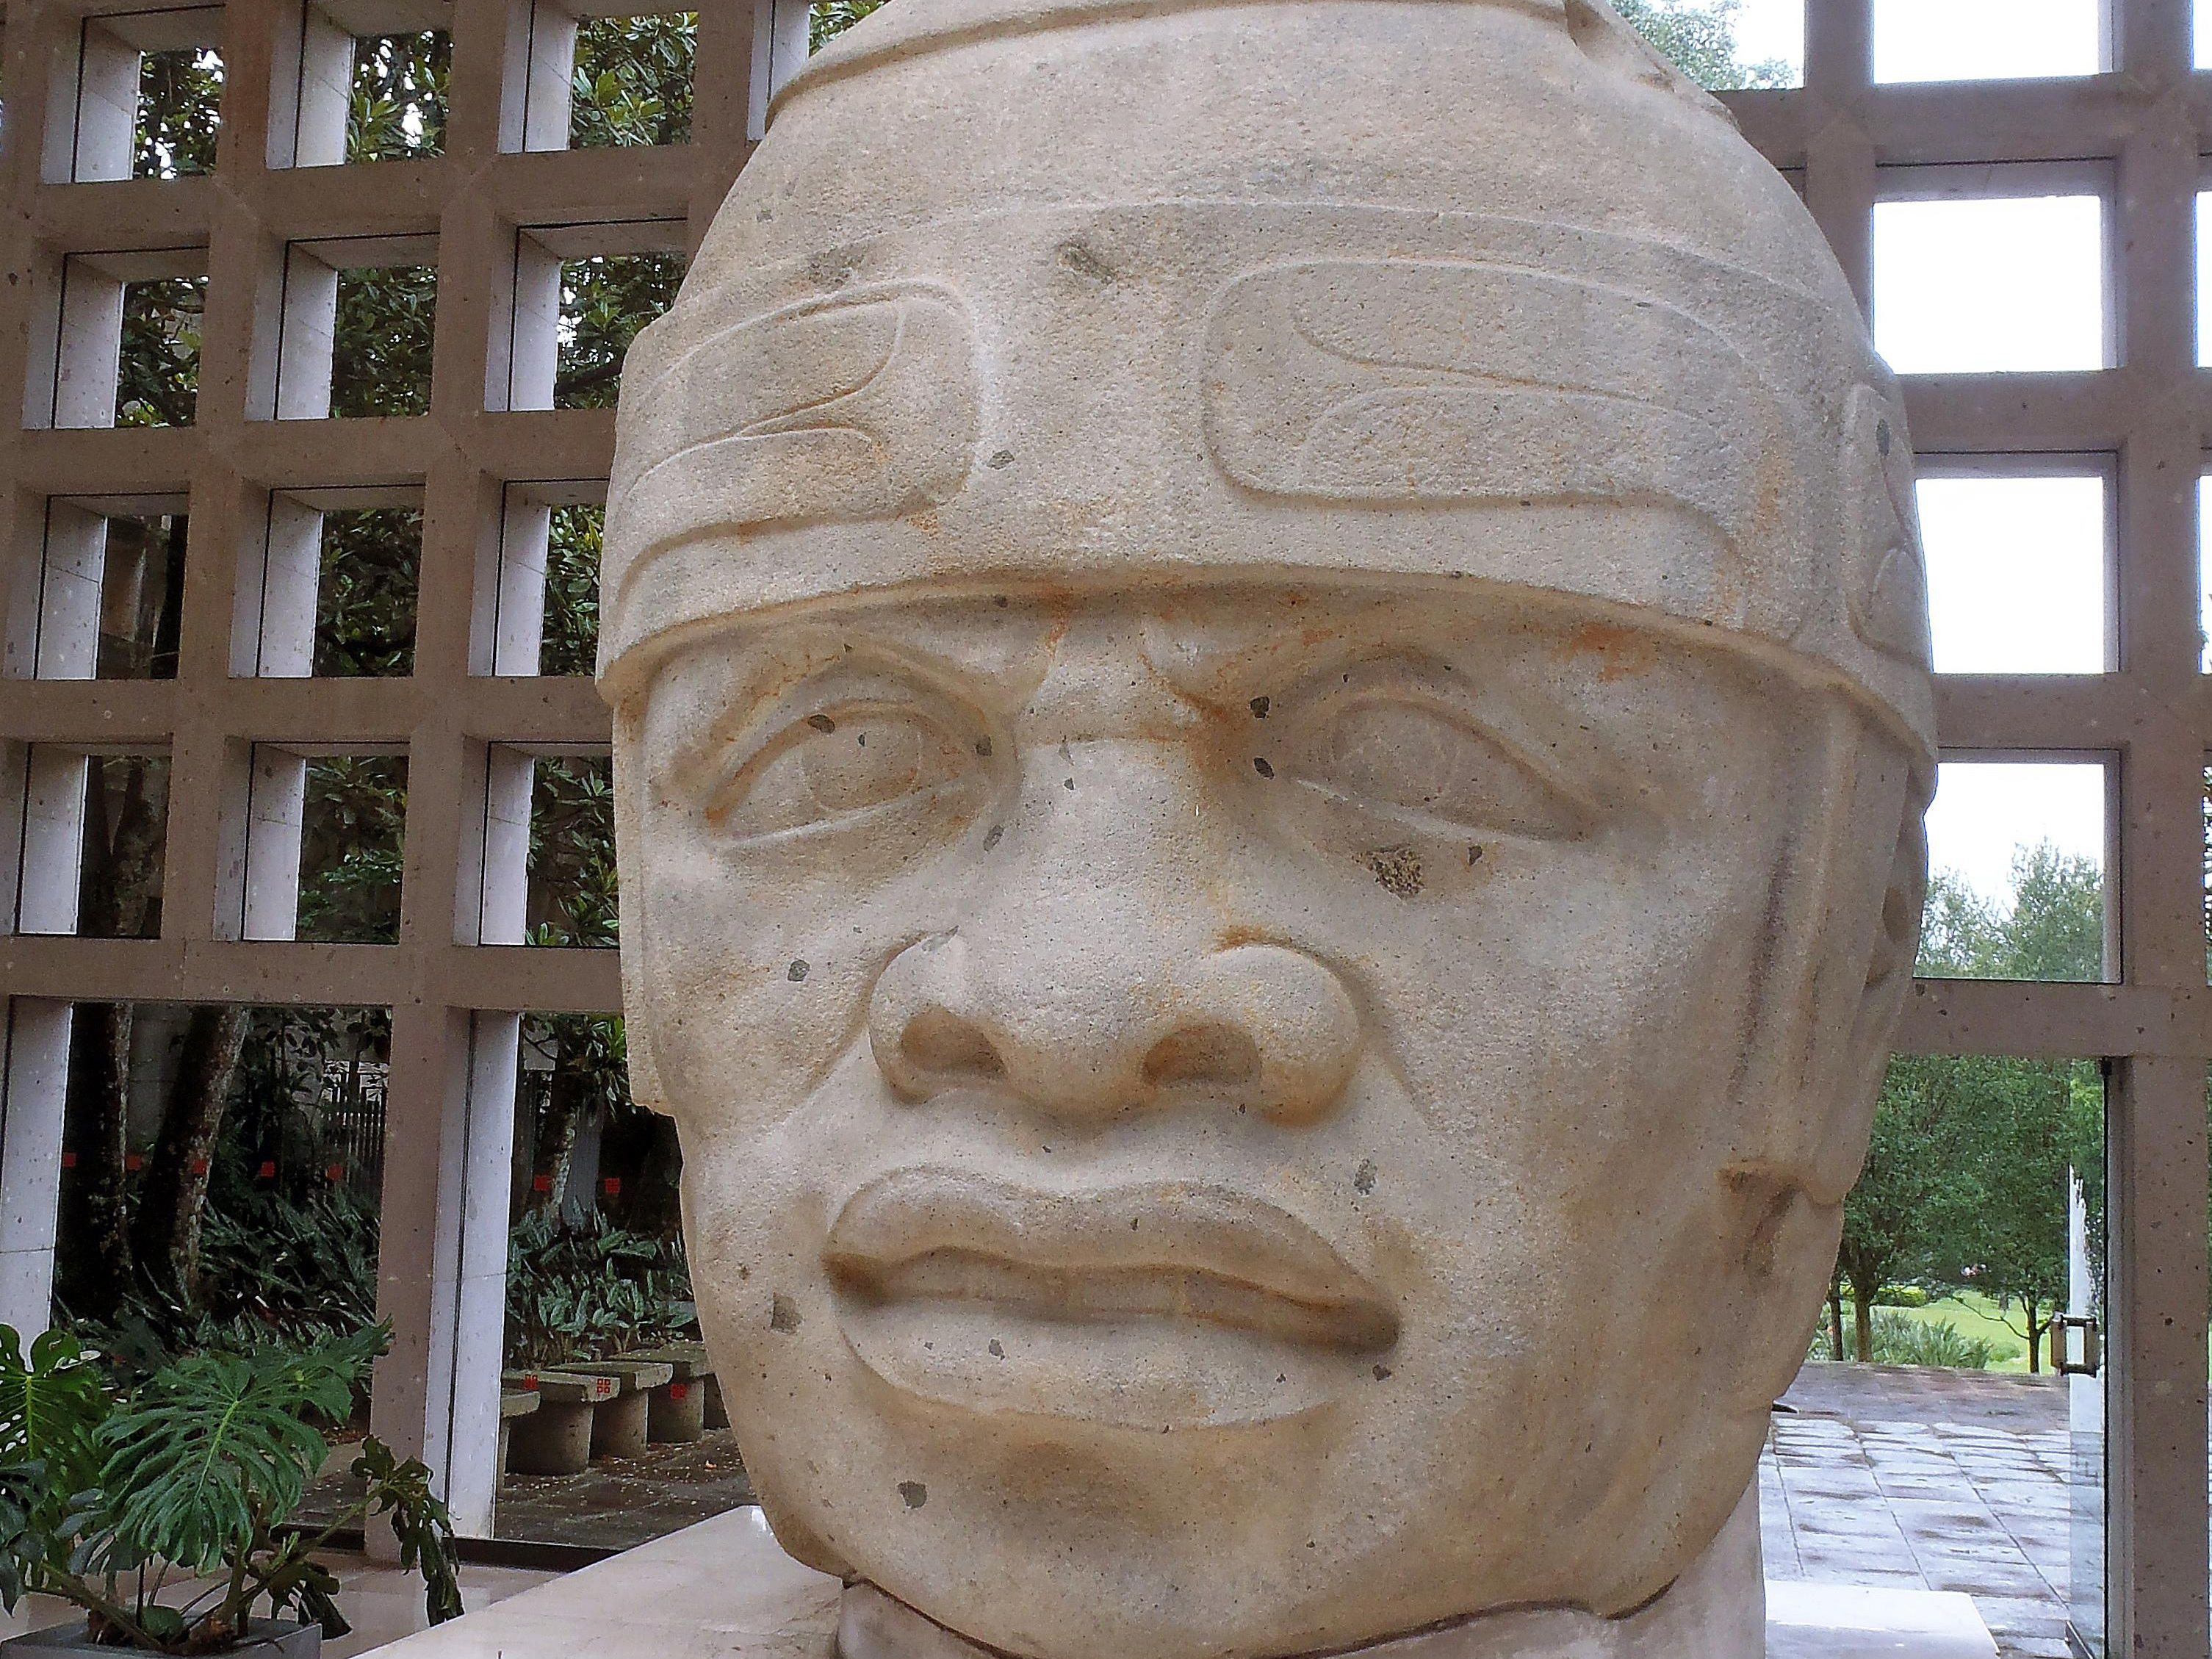 The Olmec The First Great Mesoamerican Civilization